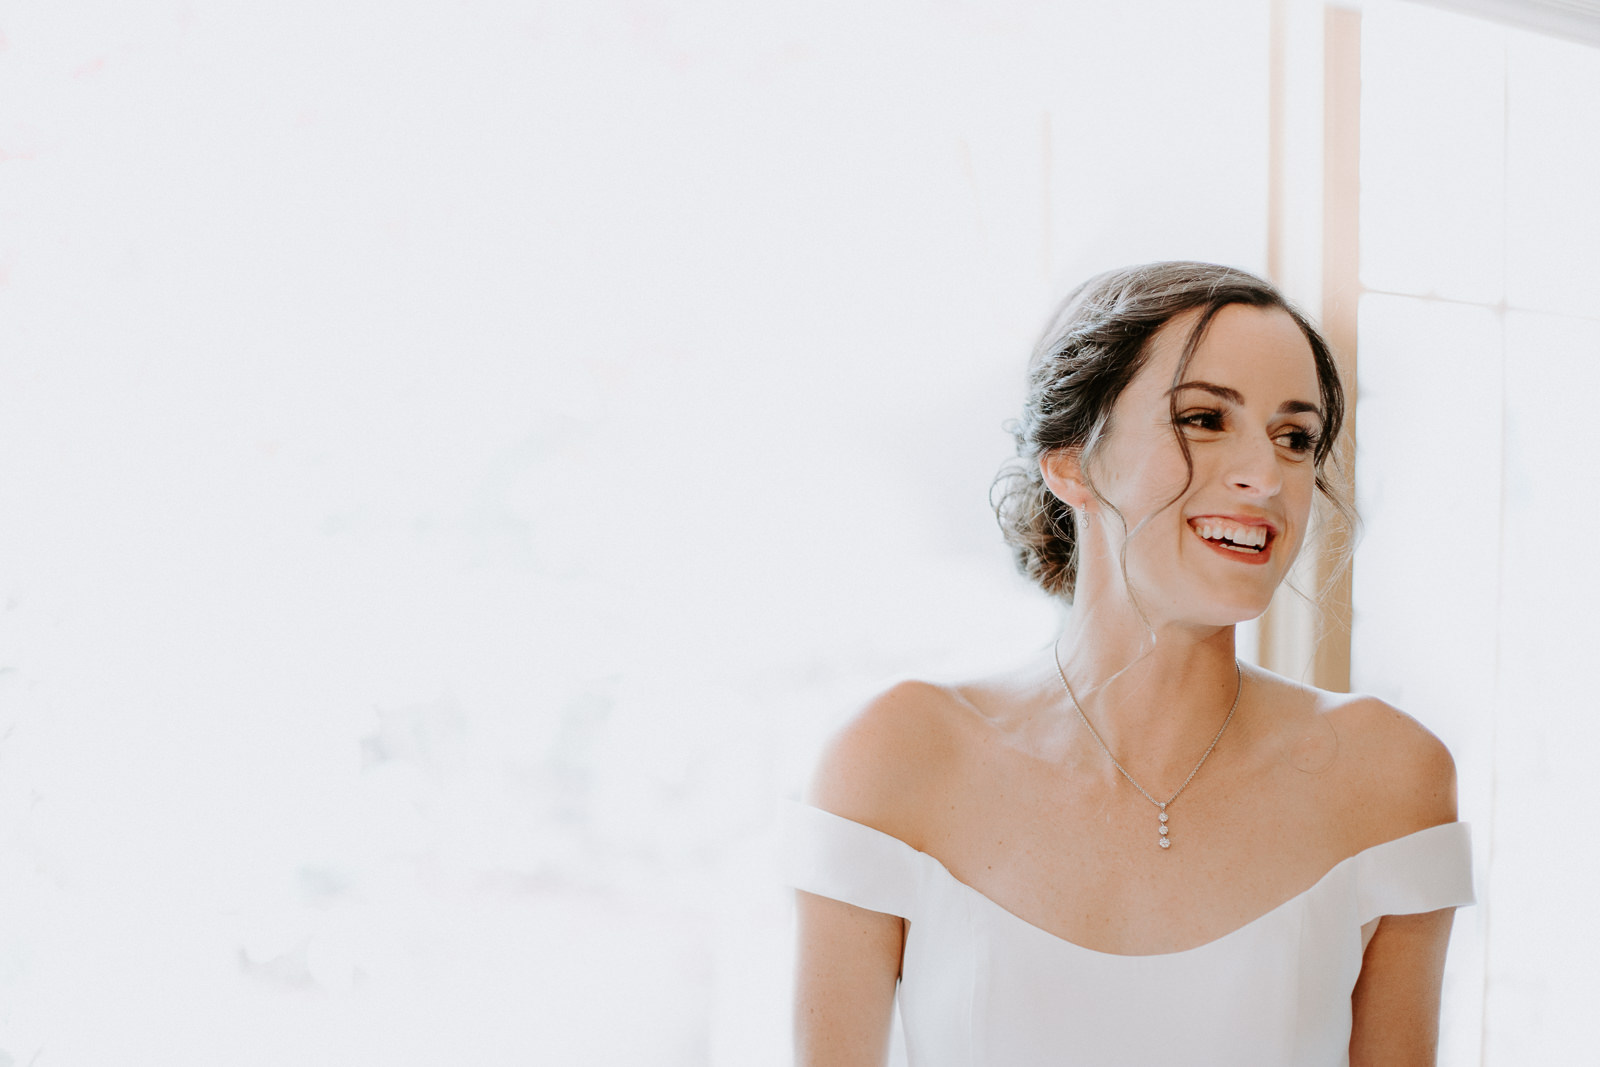 Bride laughing in a candid moment against white background